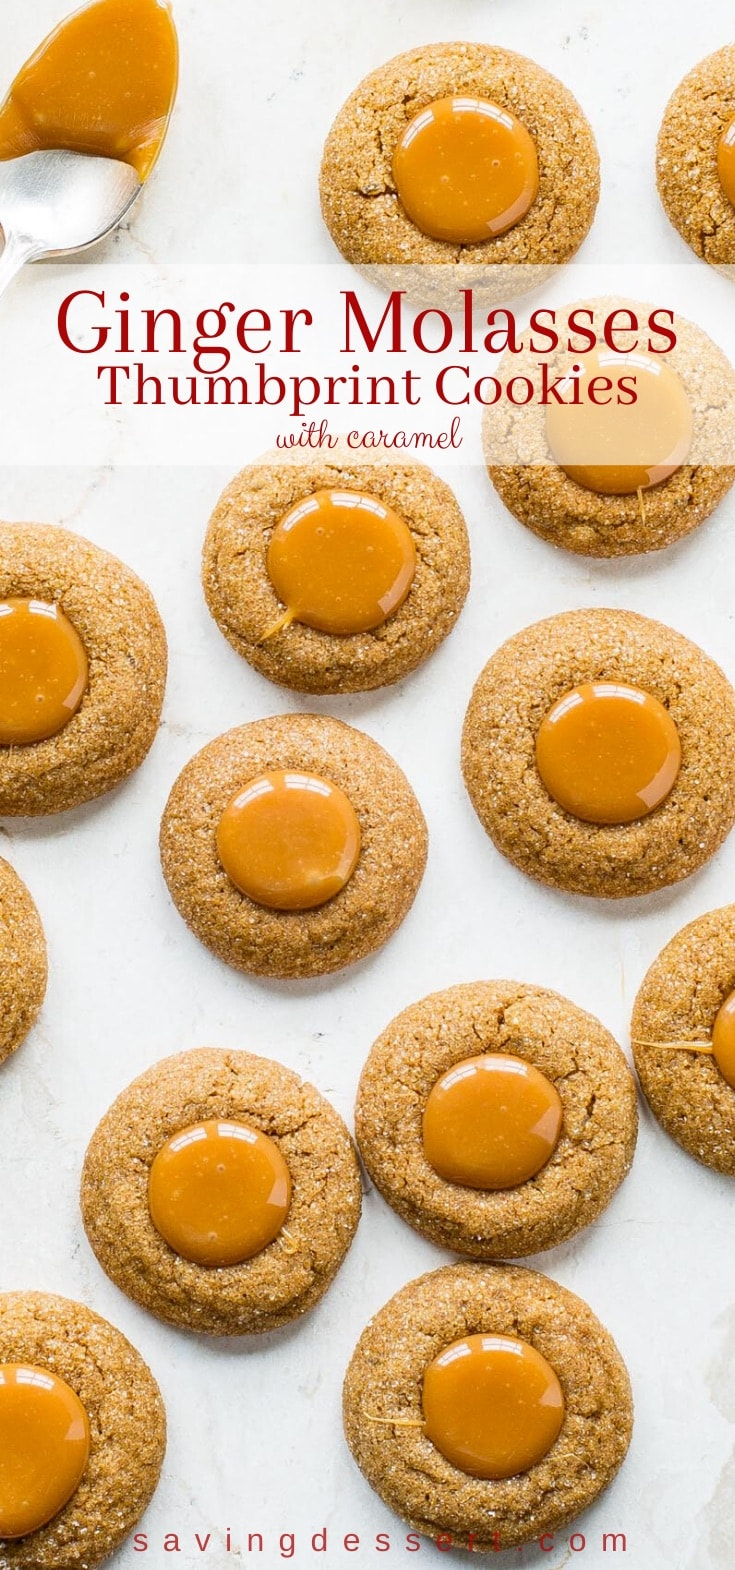 A tray of ginger molasses cookies filled with caramel